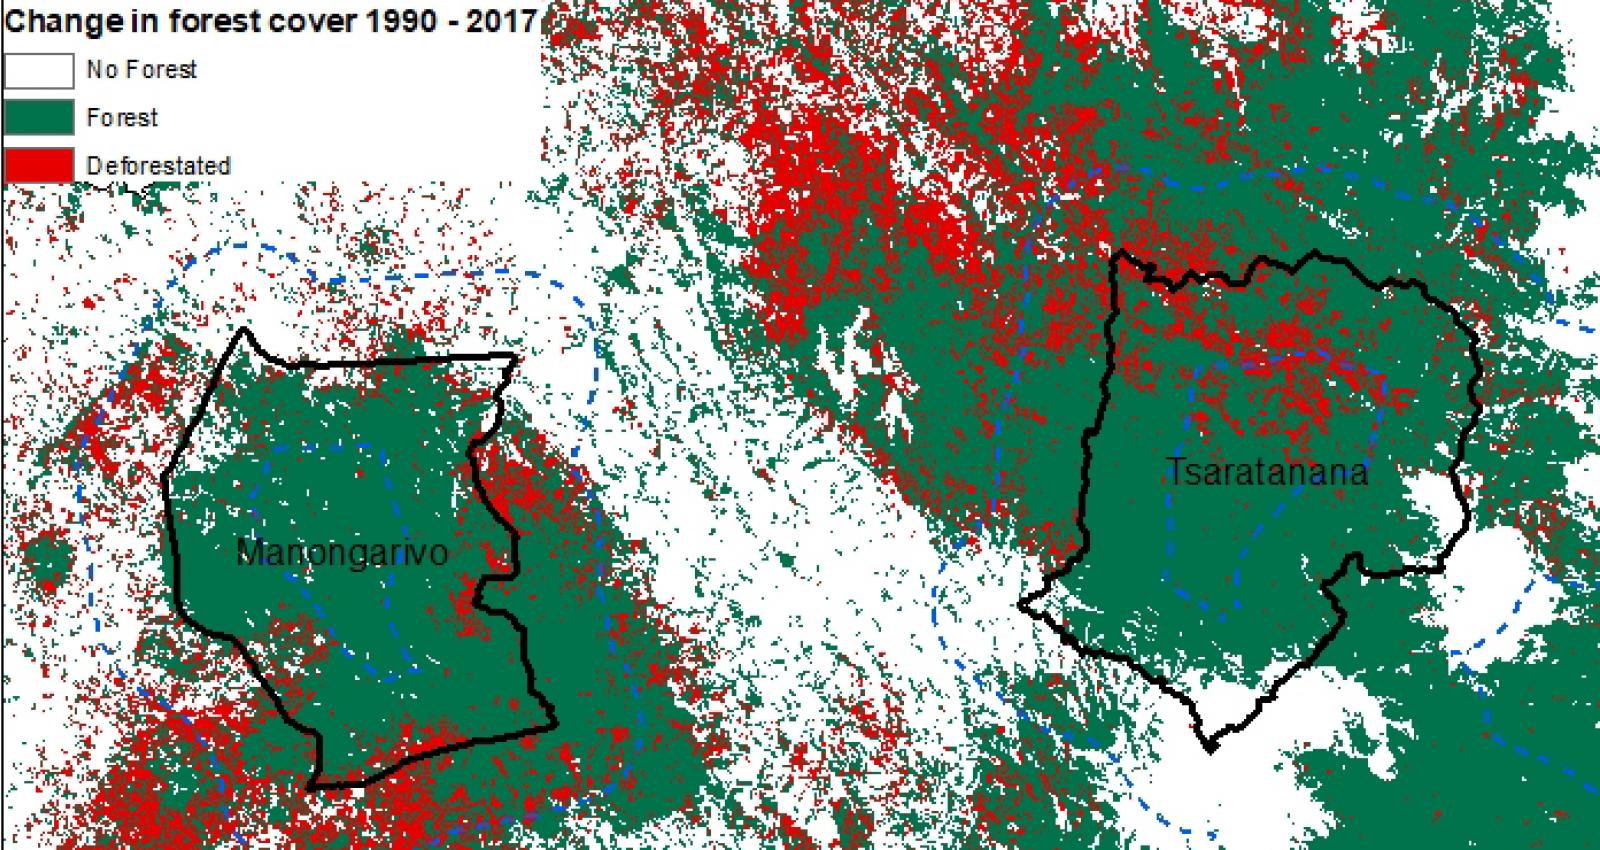 change in forest cover of the land surface in Madagascar from 1990 to 2017.